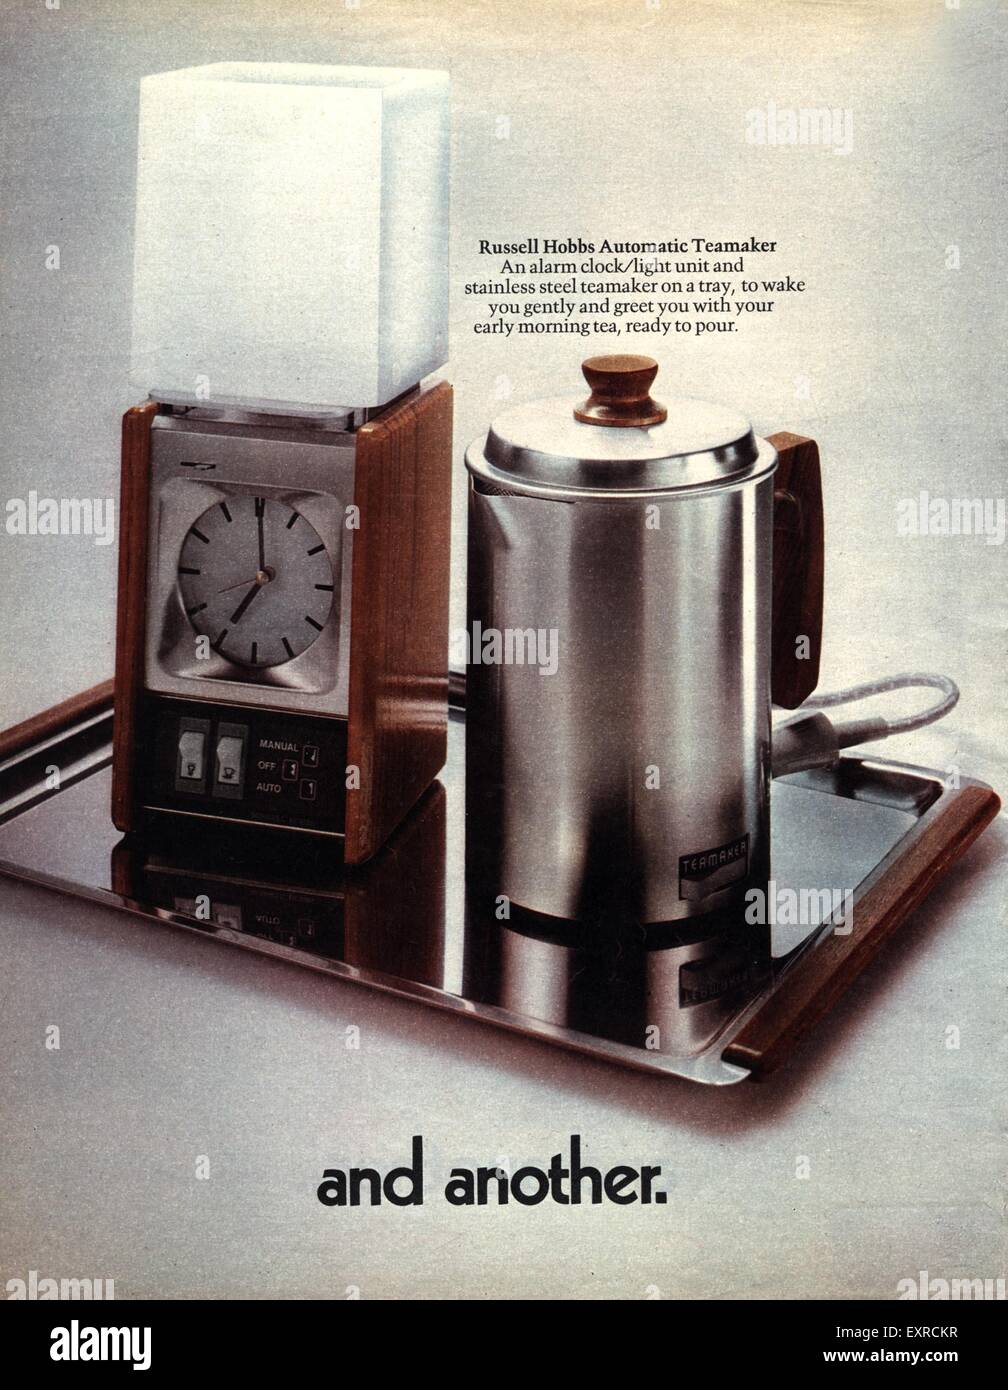 1970s UK Russell Hobbs Automatic Tea Makers Magazine Advert (detail) - Stock Image